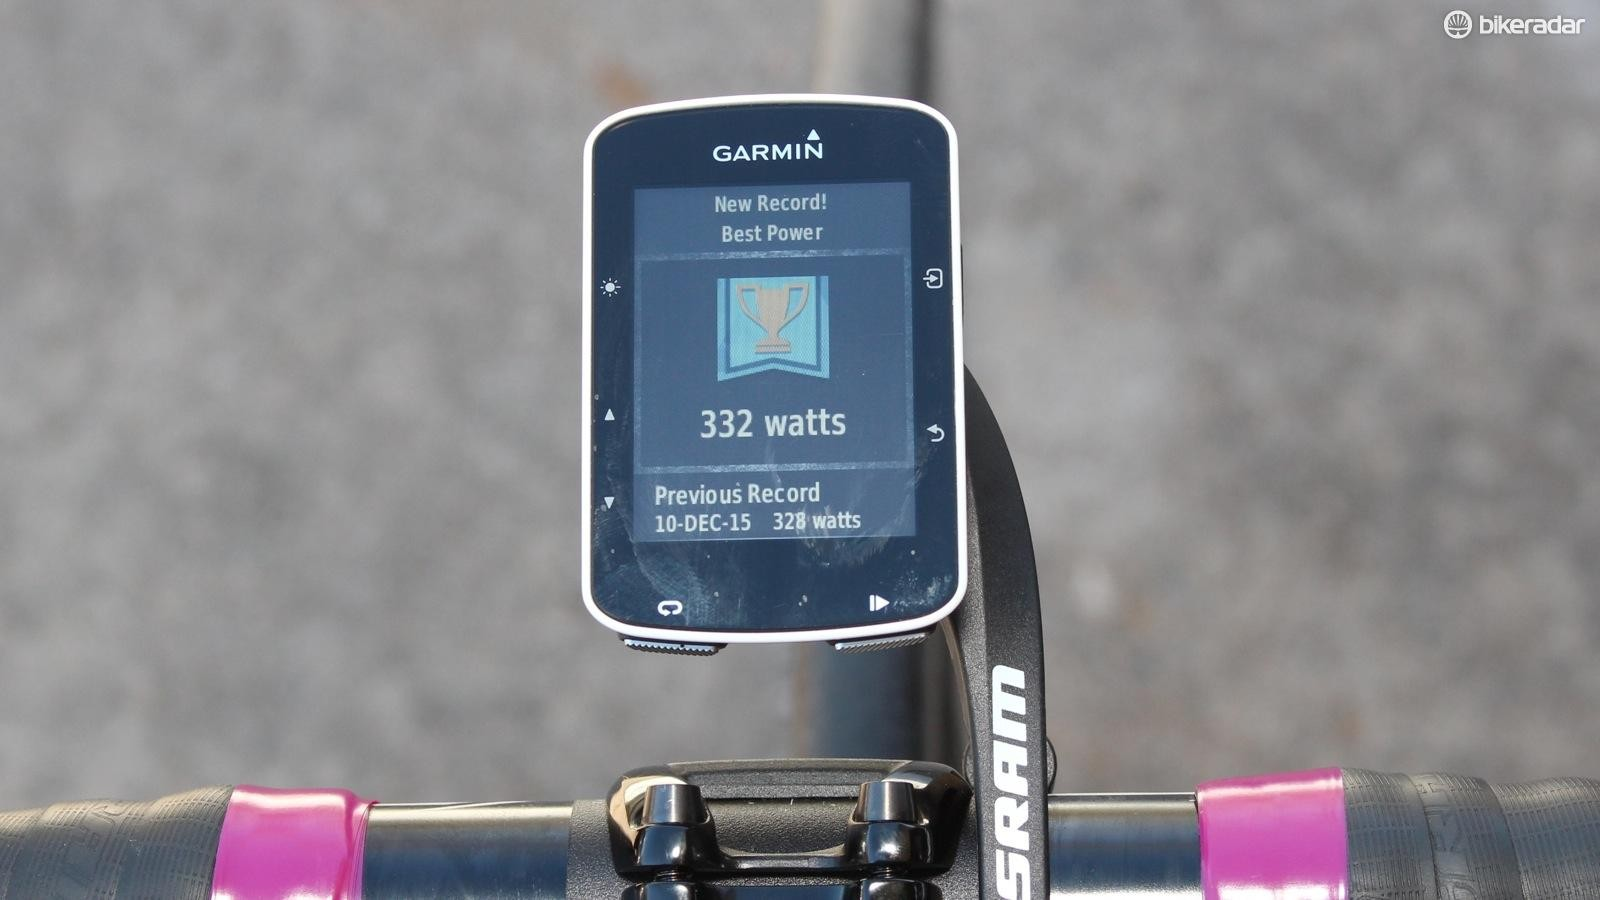 The Garmin 520 provides plenty of meaty training and performance data to get your teeth into